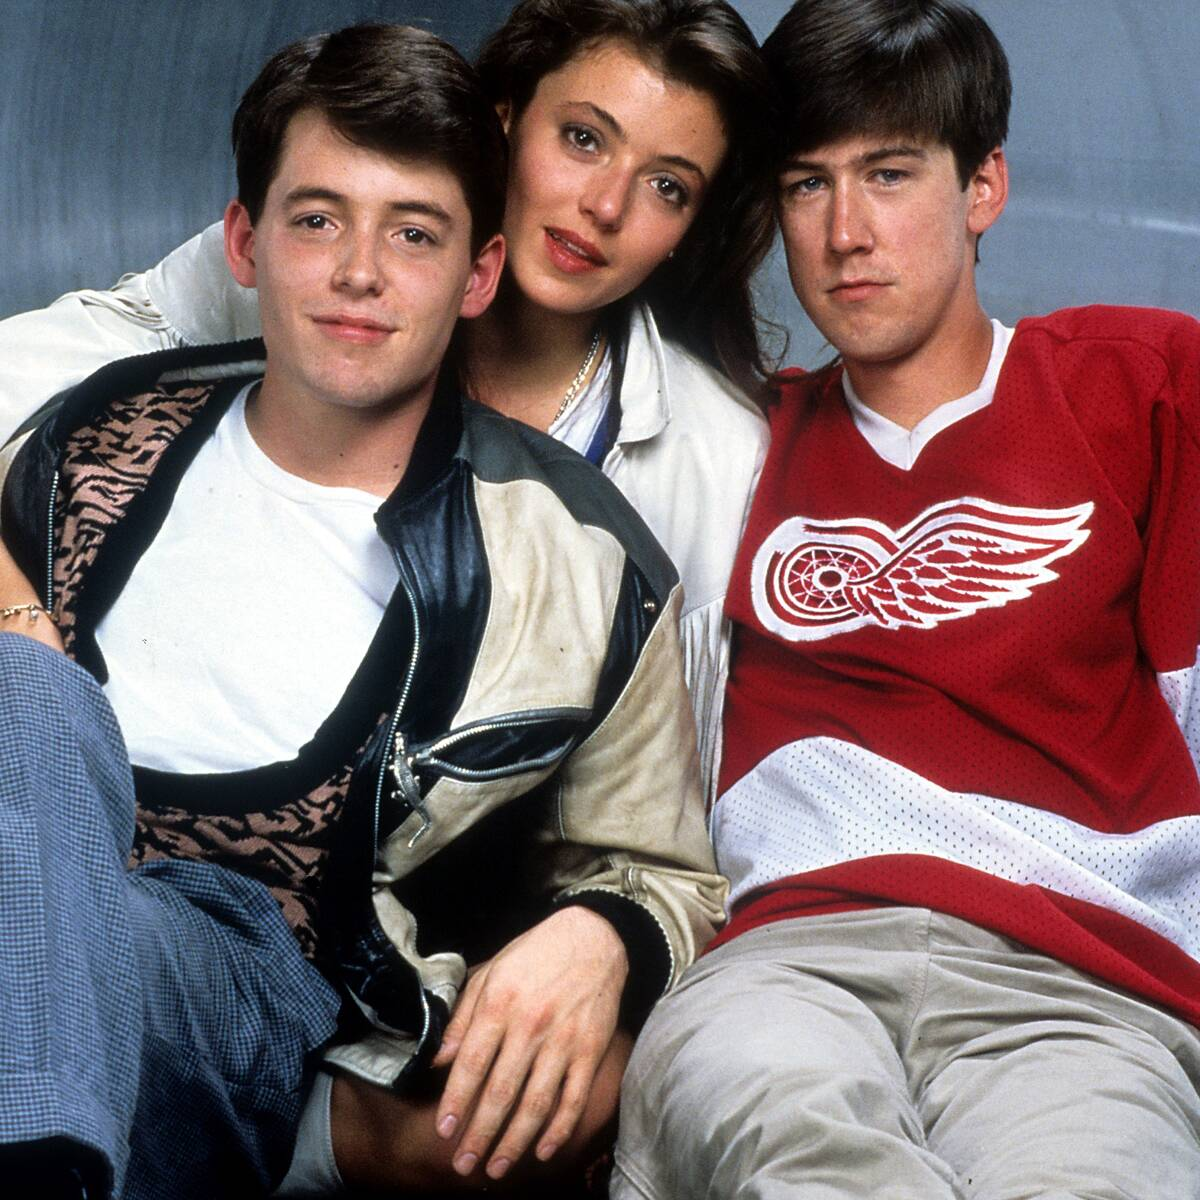 See the Stars of Ferris Bueller's Day Off, Then & Now